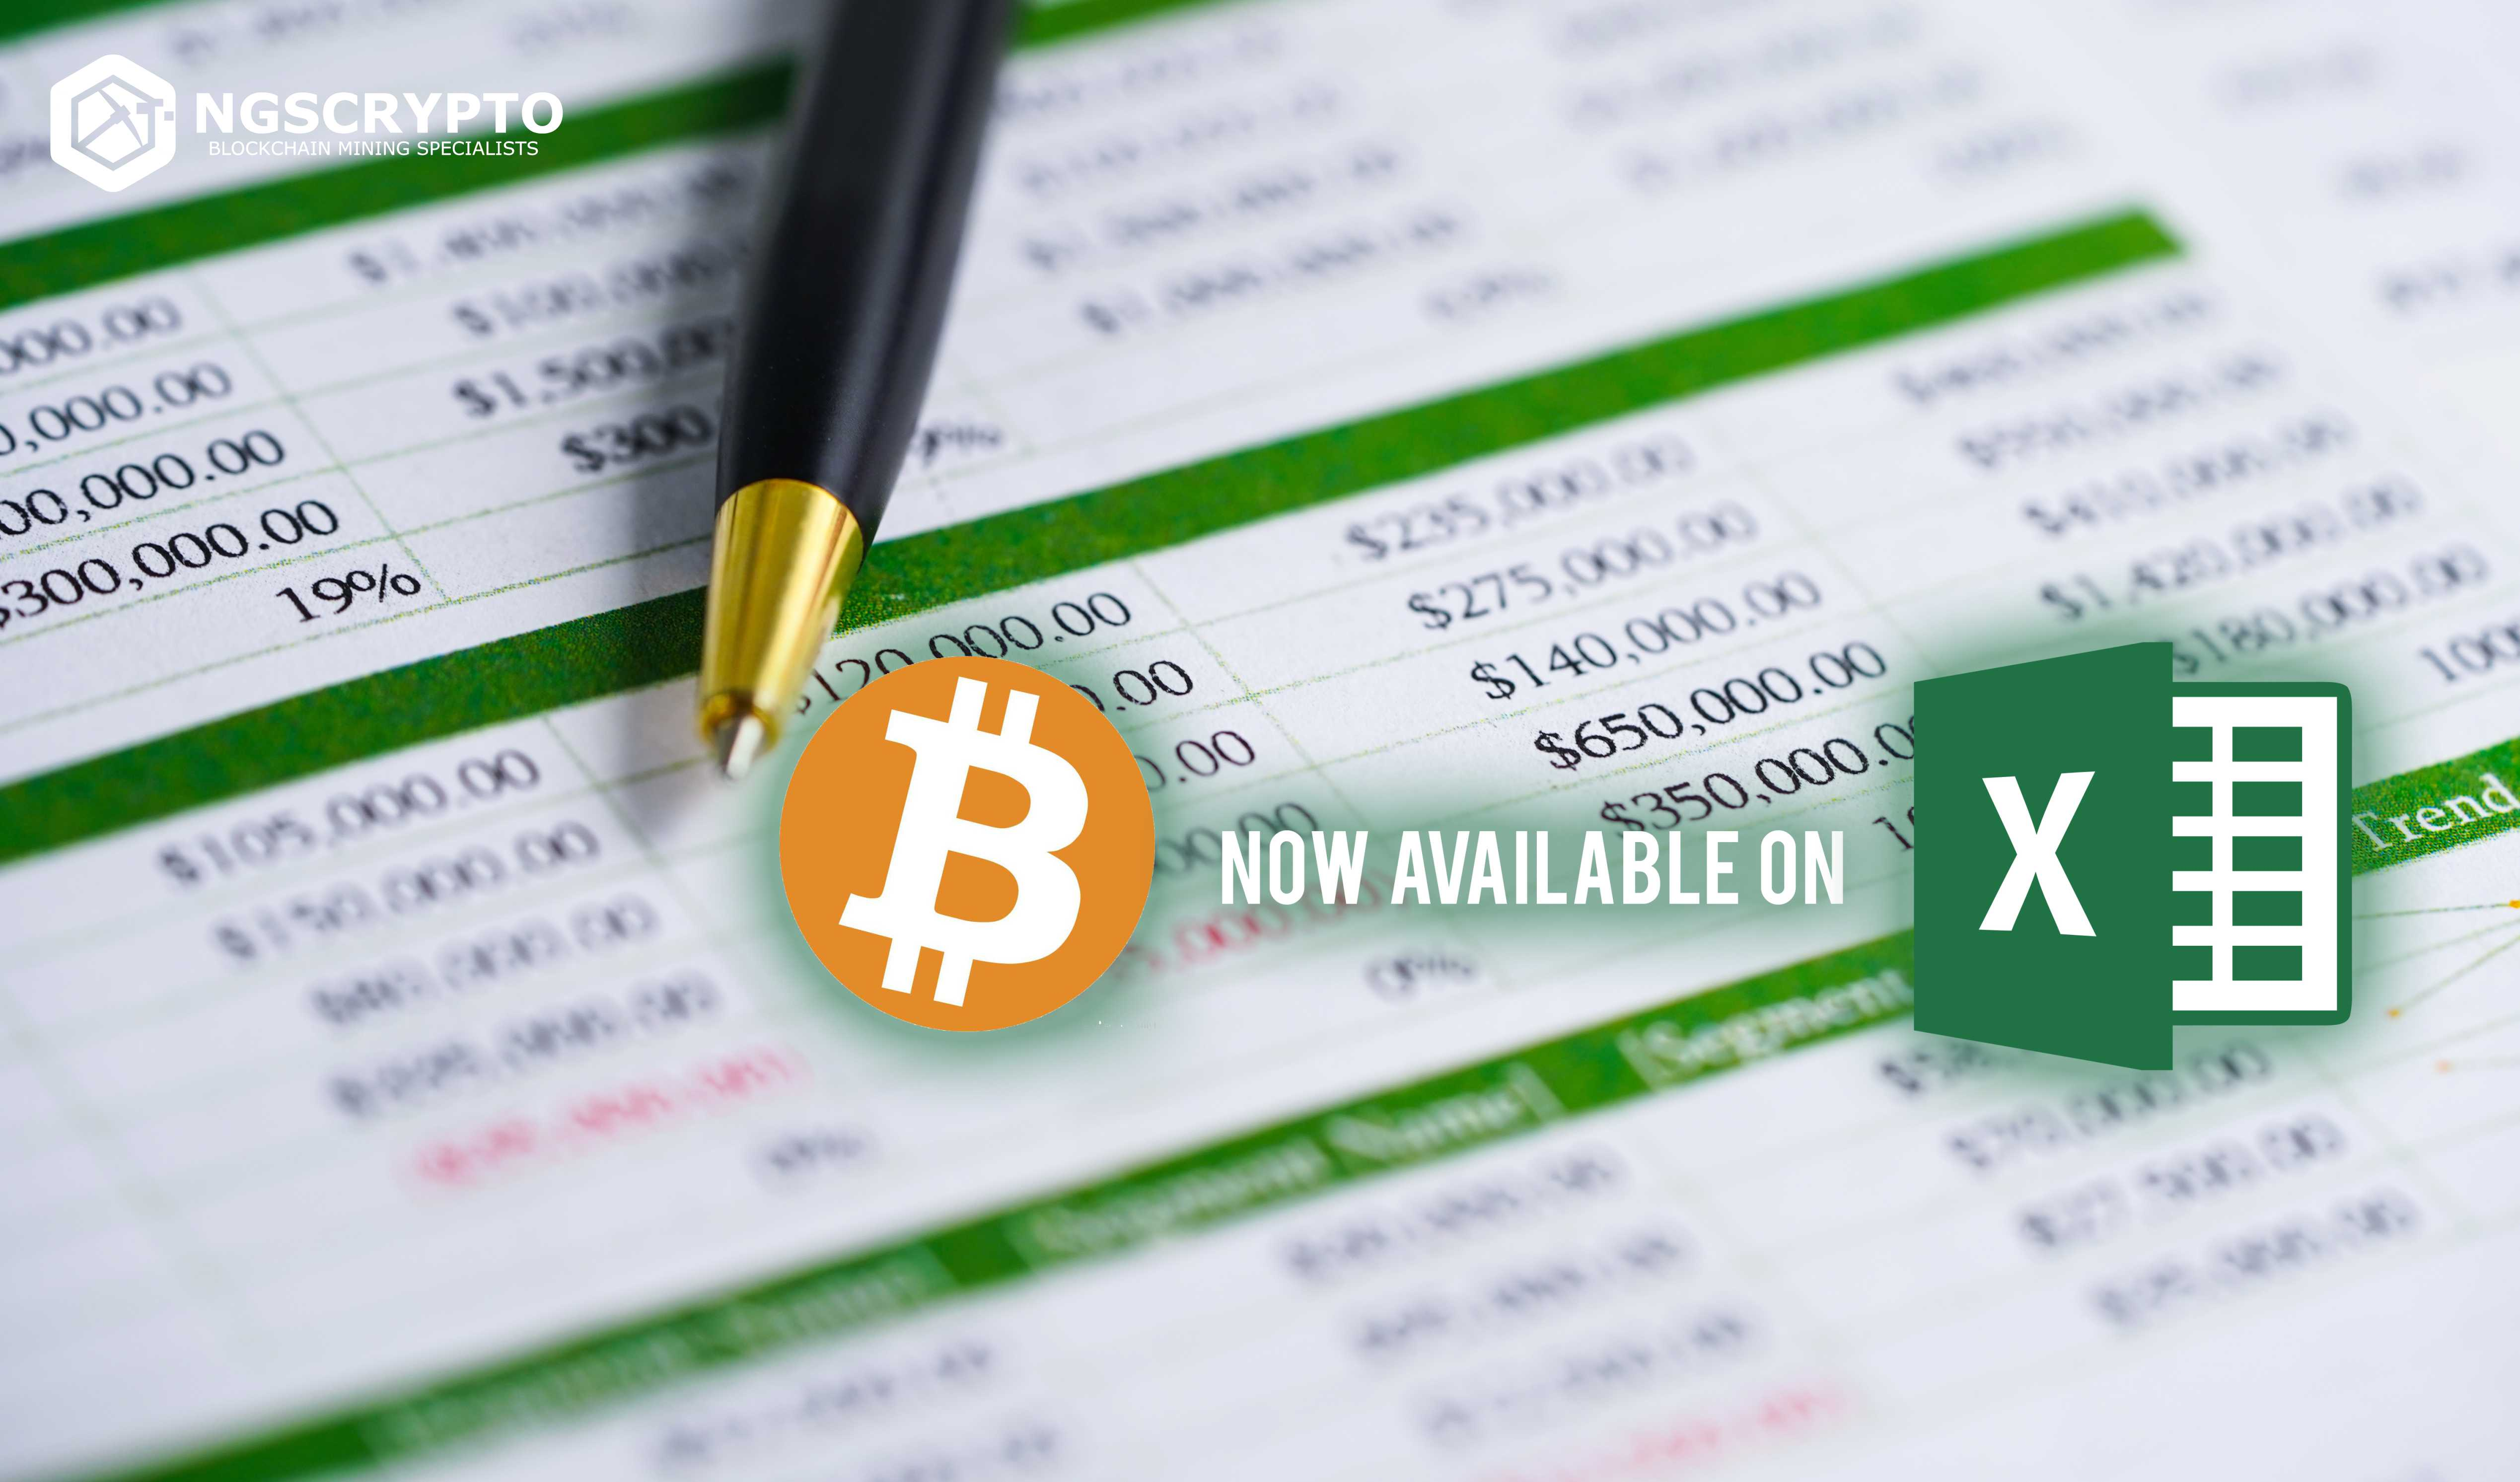 BITCOIN (BTC) ADDED TO MICROSOFT EXCEL AS A CURRENCY OPTION